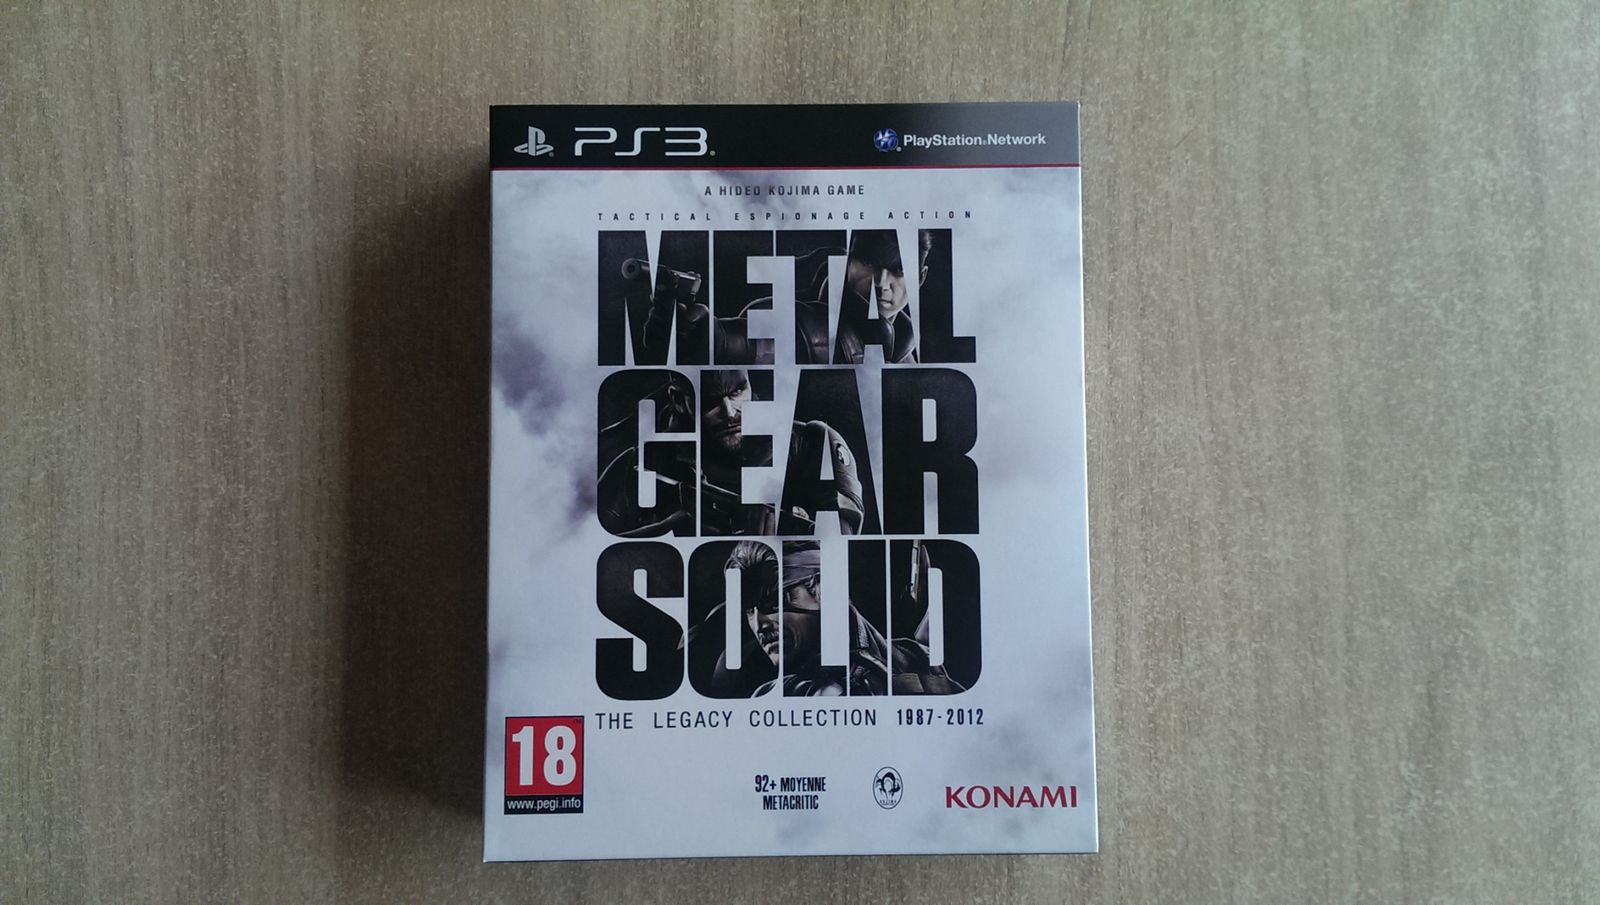 [ARRIVAGE] Metal Gear Solid: The Legacy Collection